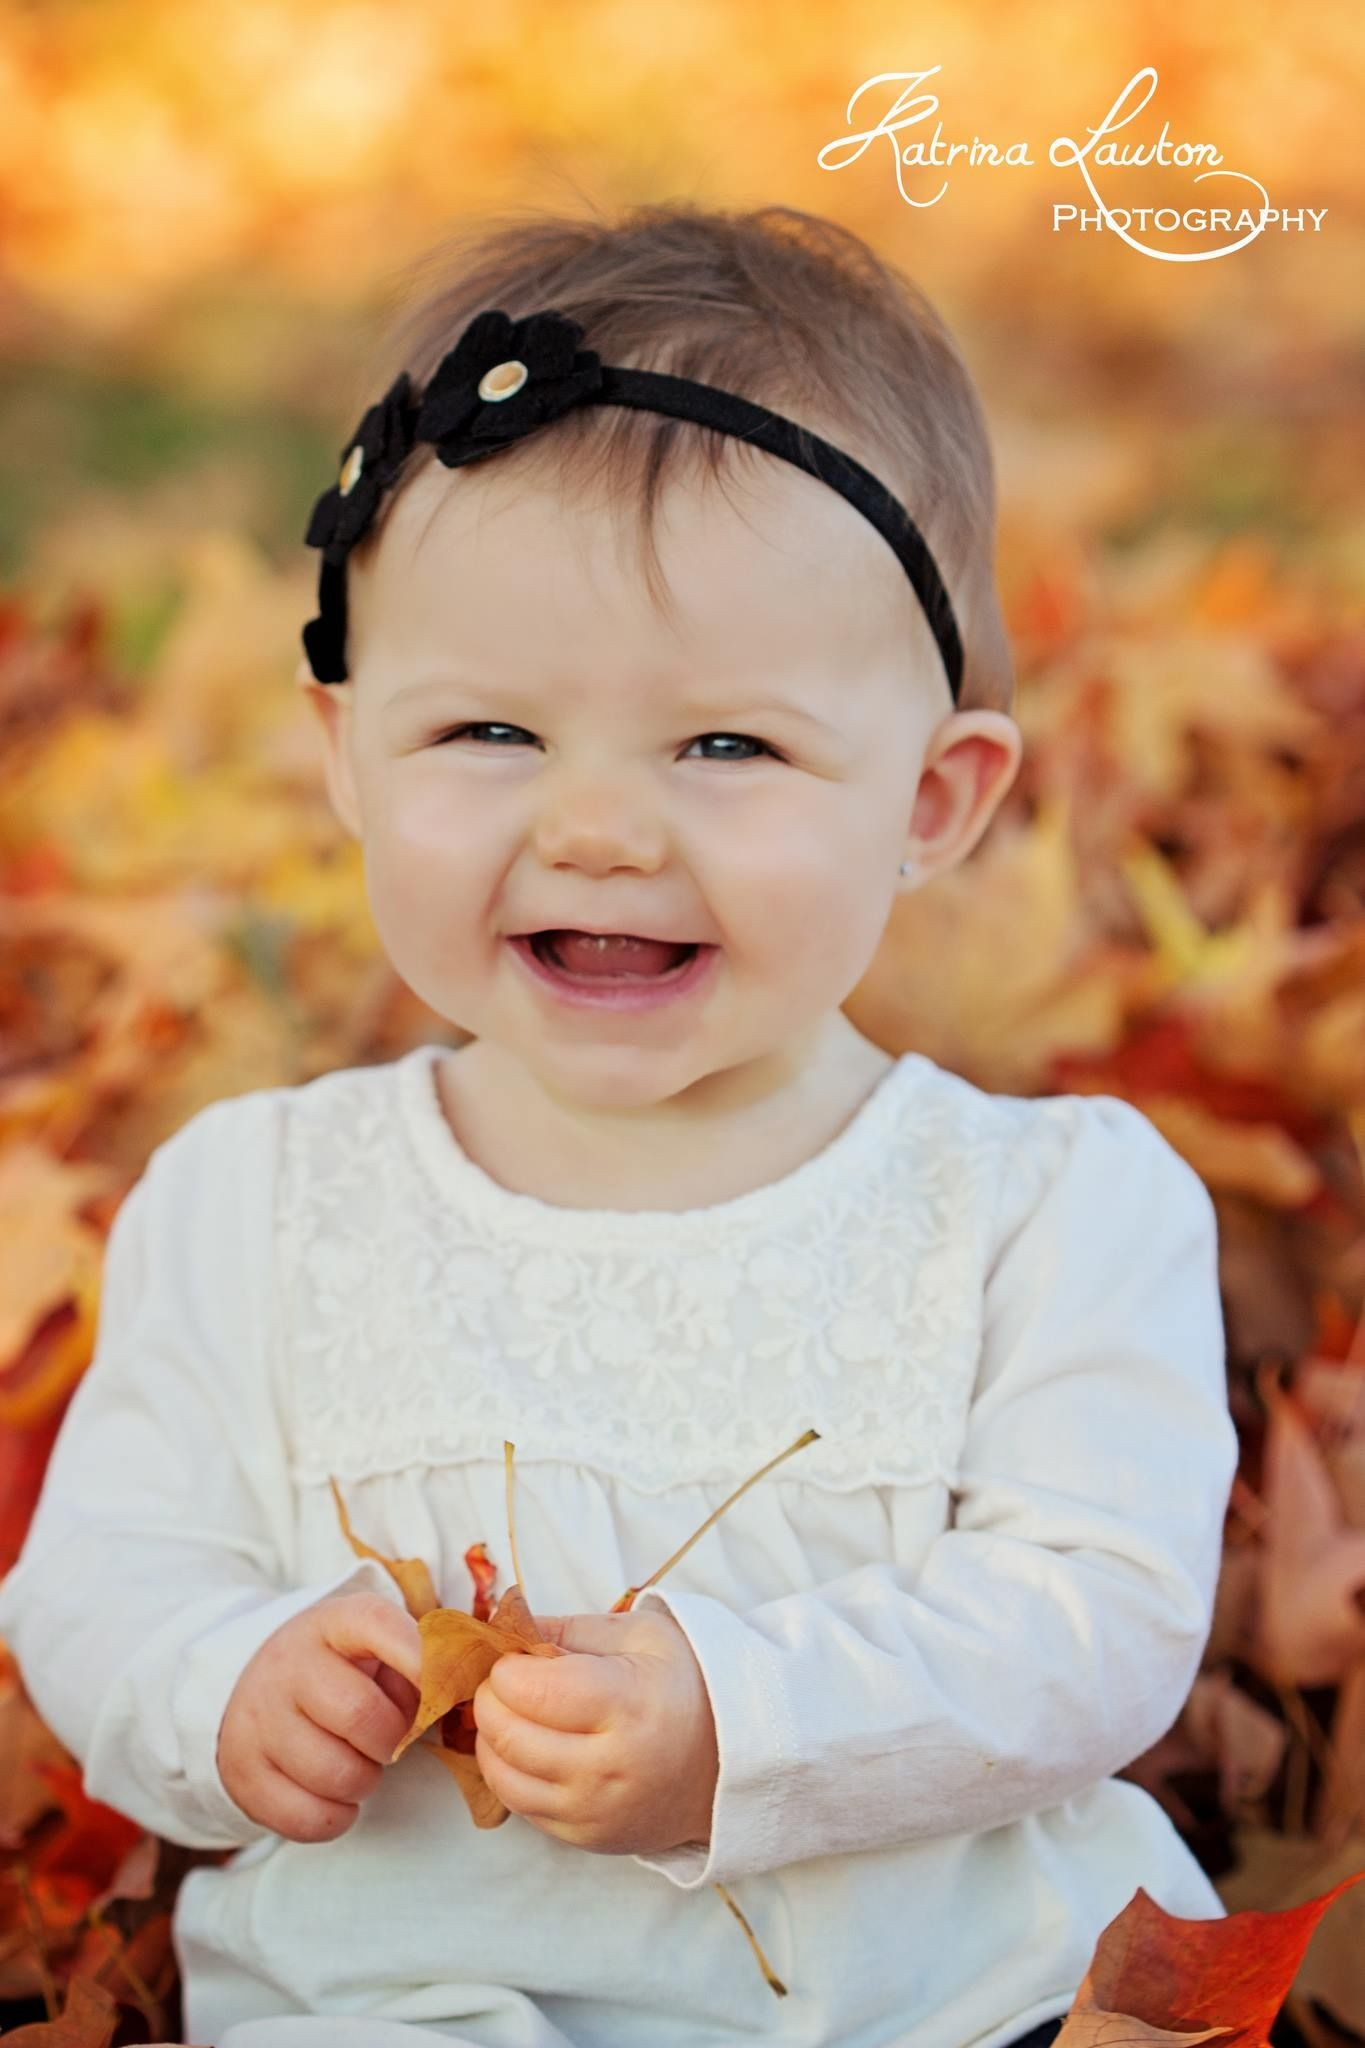 Gift Ideas For 8 Month Old Baby Girl  Fall photography 8 month old baby girl